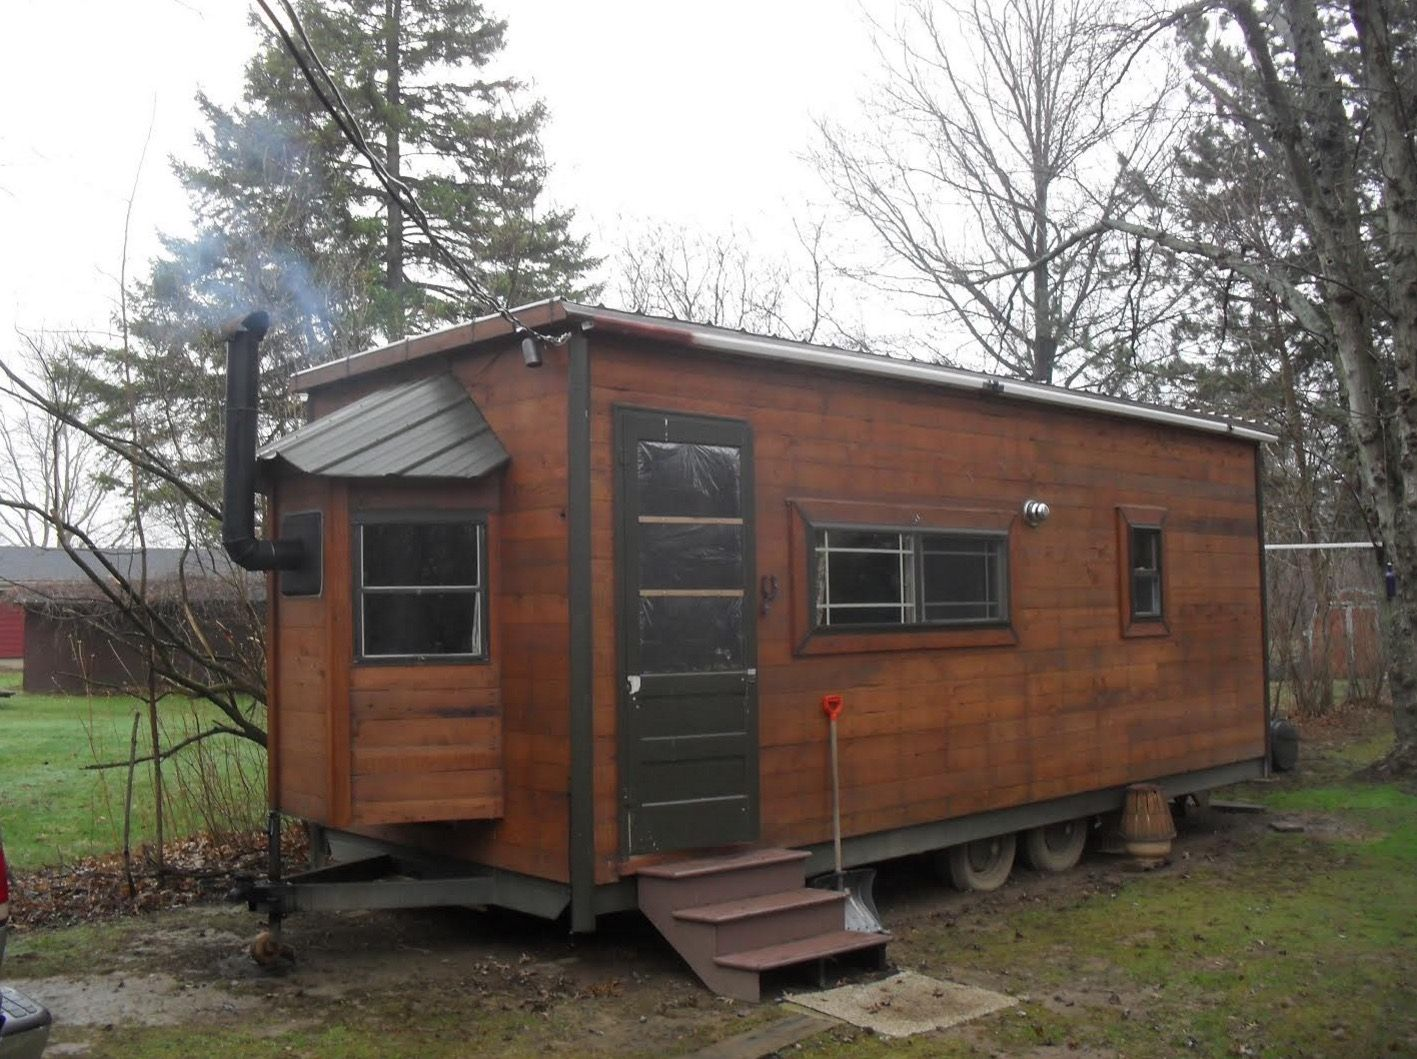 kerry 39 s tiny house on wheels built in his backyard one floor plan with useful interior plan. Black Bedroom Furniture Sets. Home Design Ideas